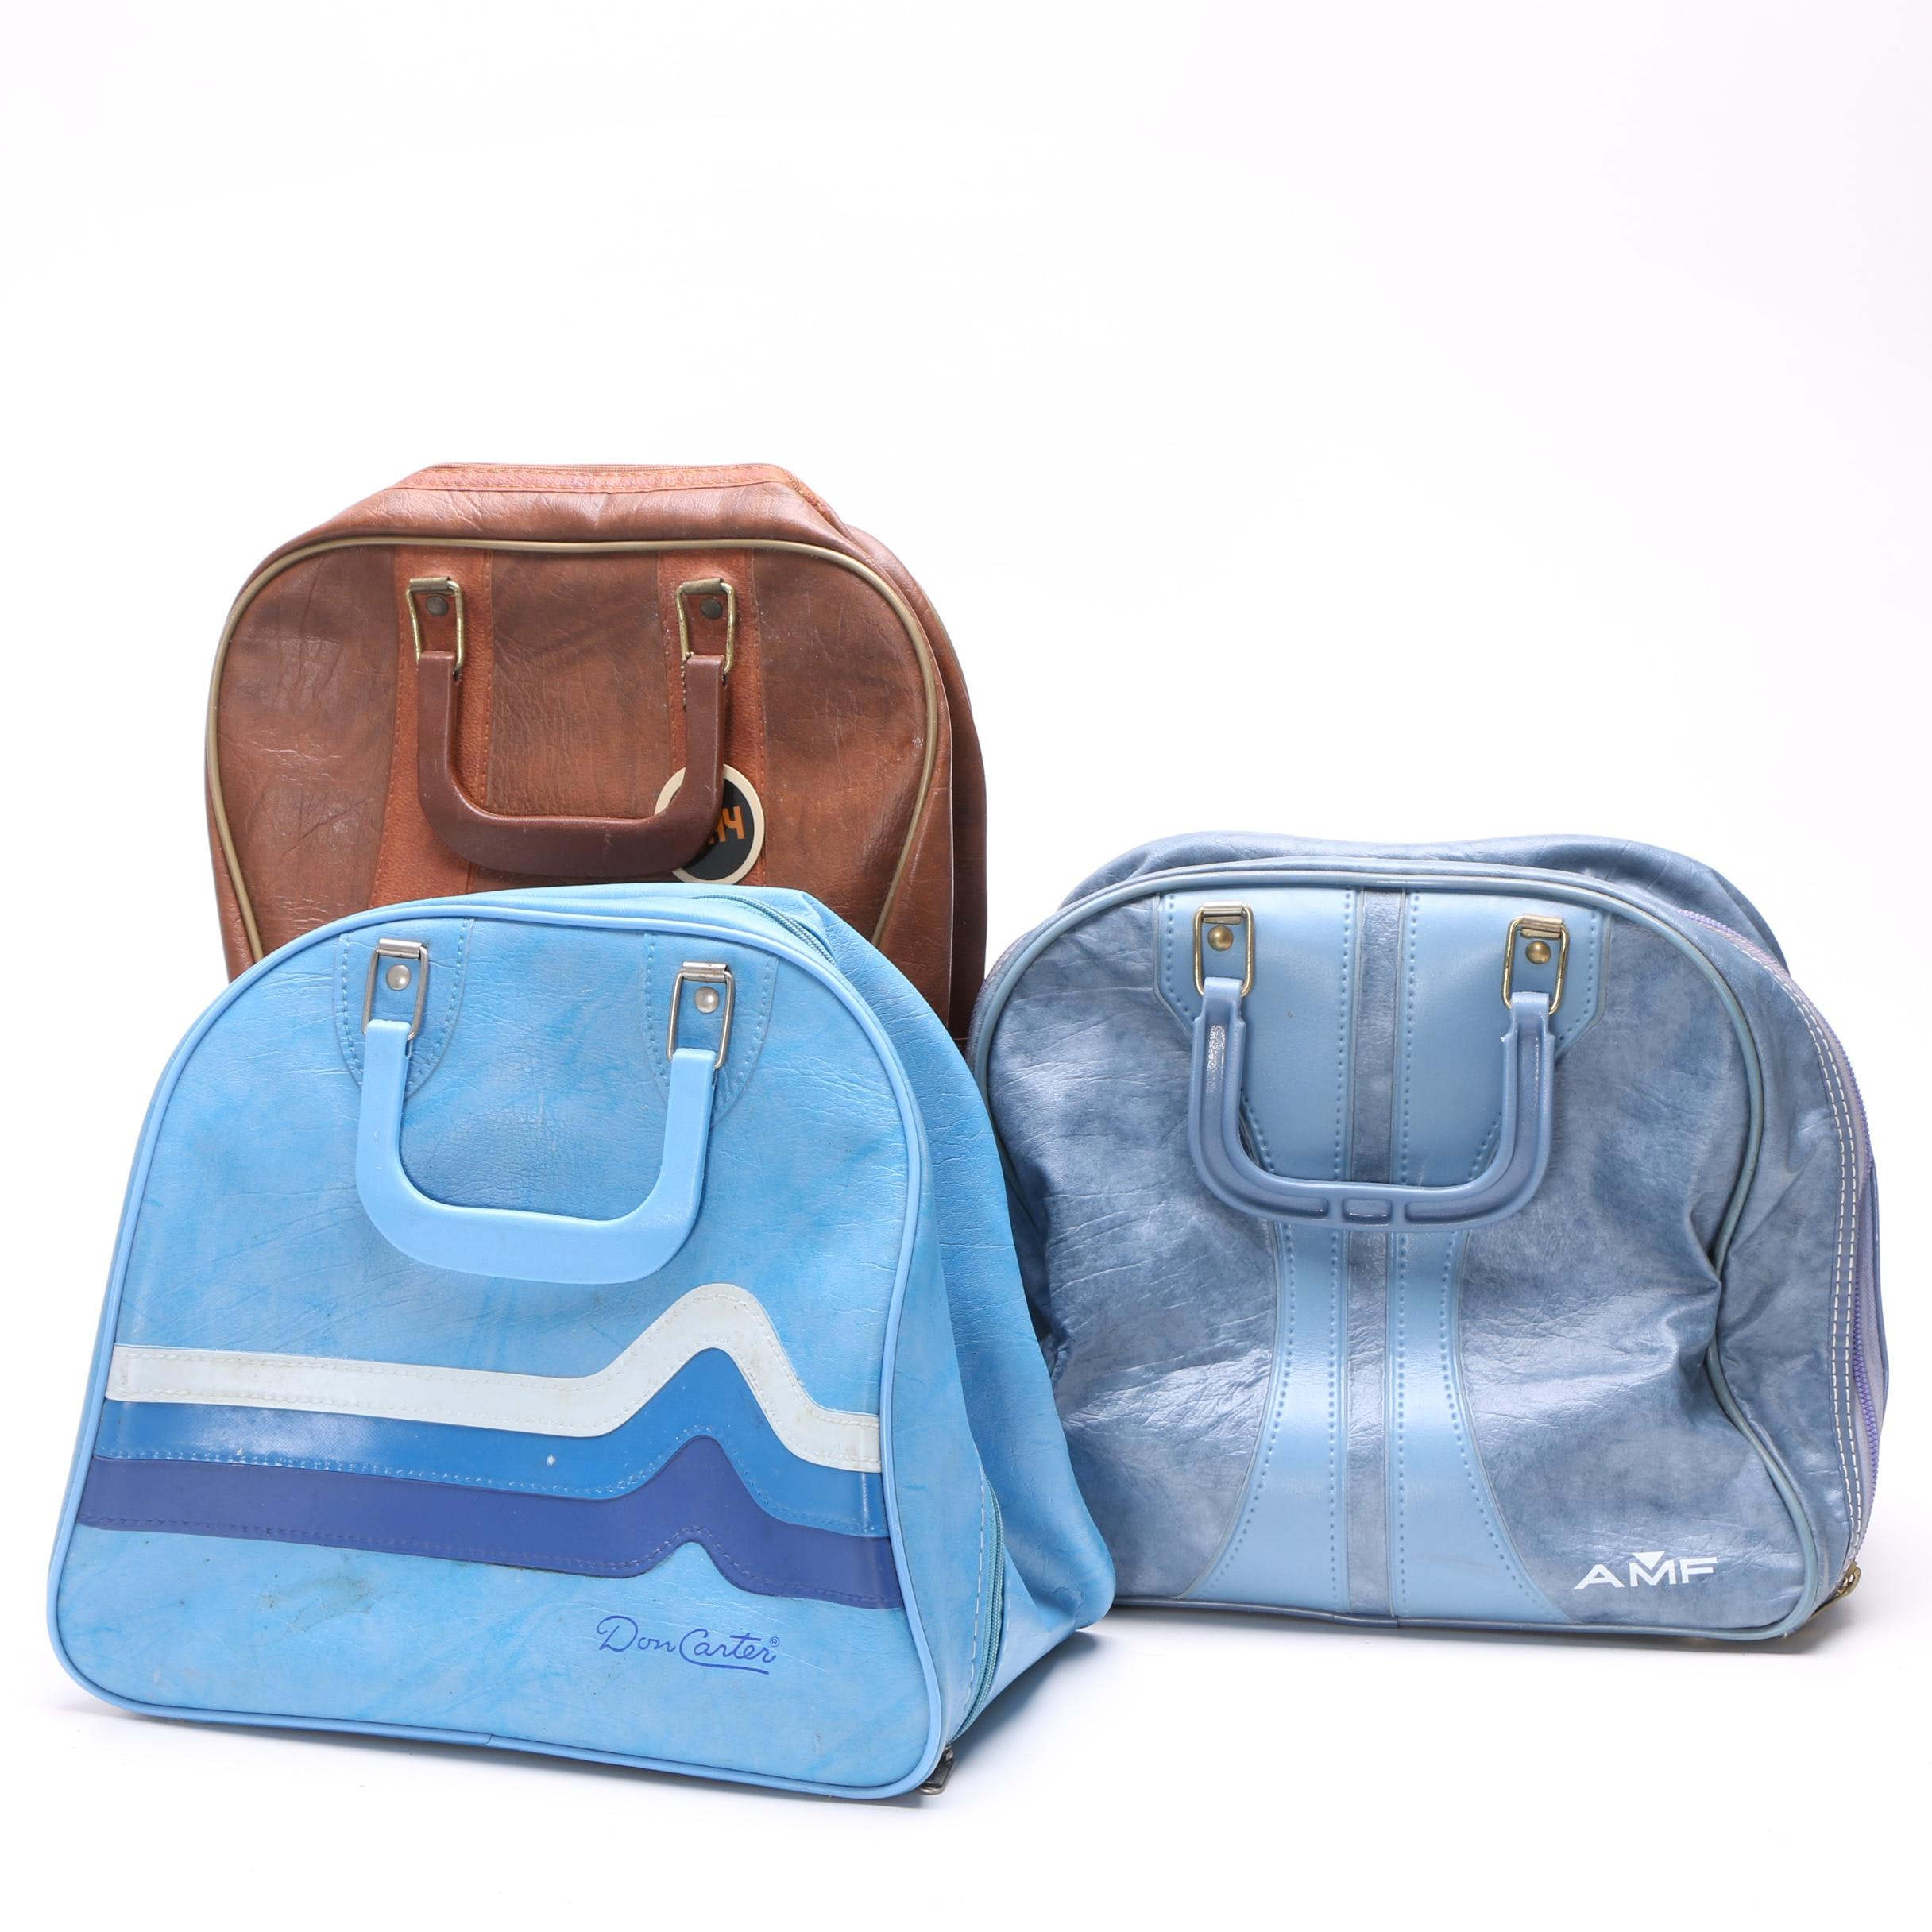 Vintage AMF, Ajay and Don Carter Faux Leather Bowling Ball Bags